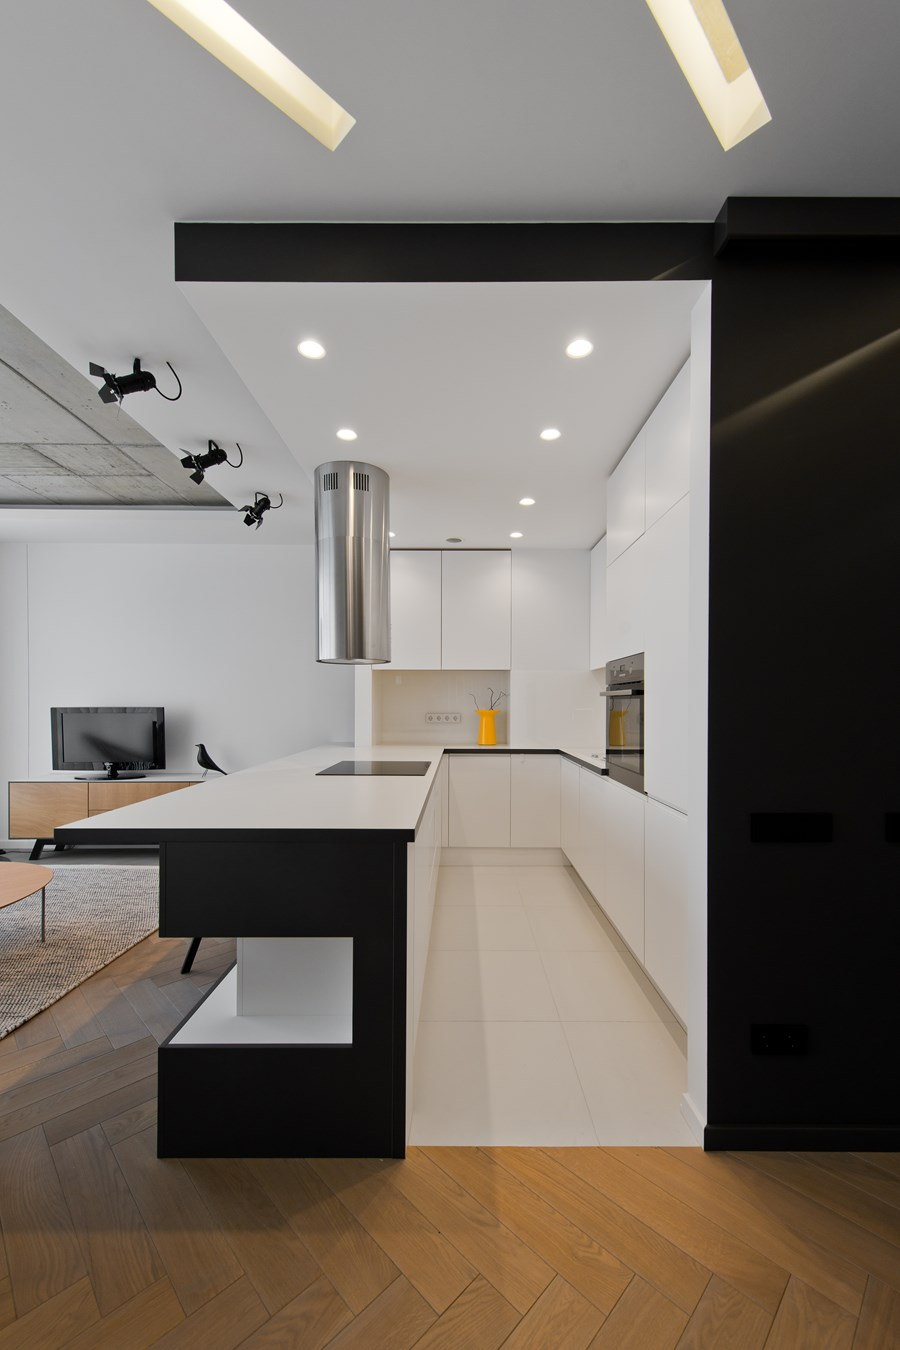 Butas River loft by In Arch 09